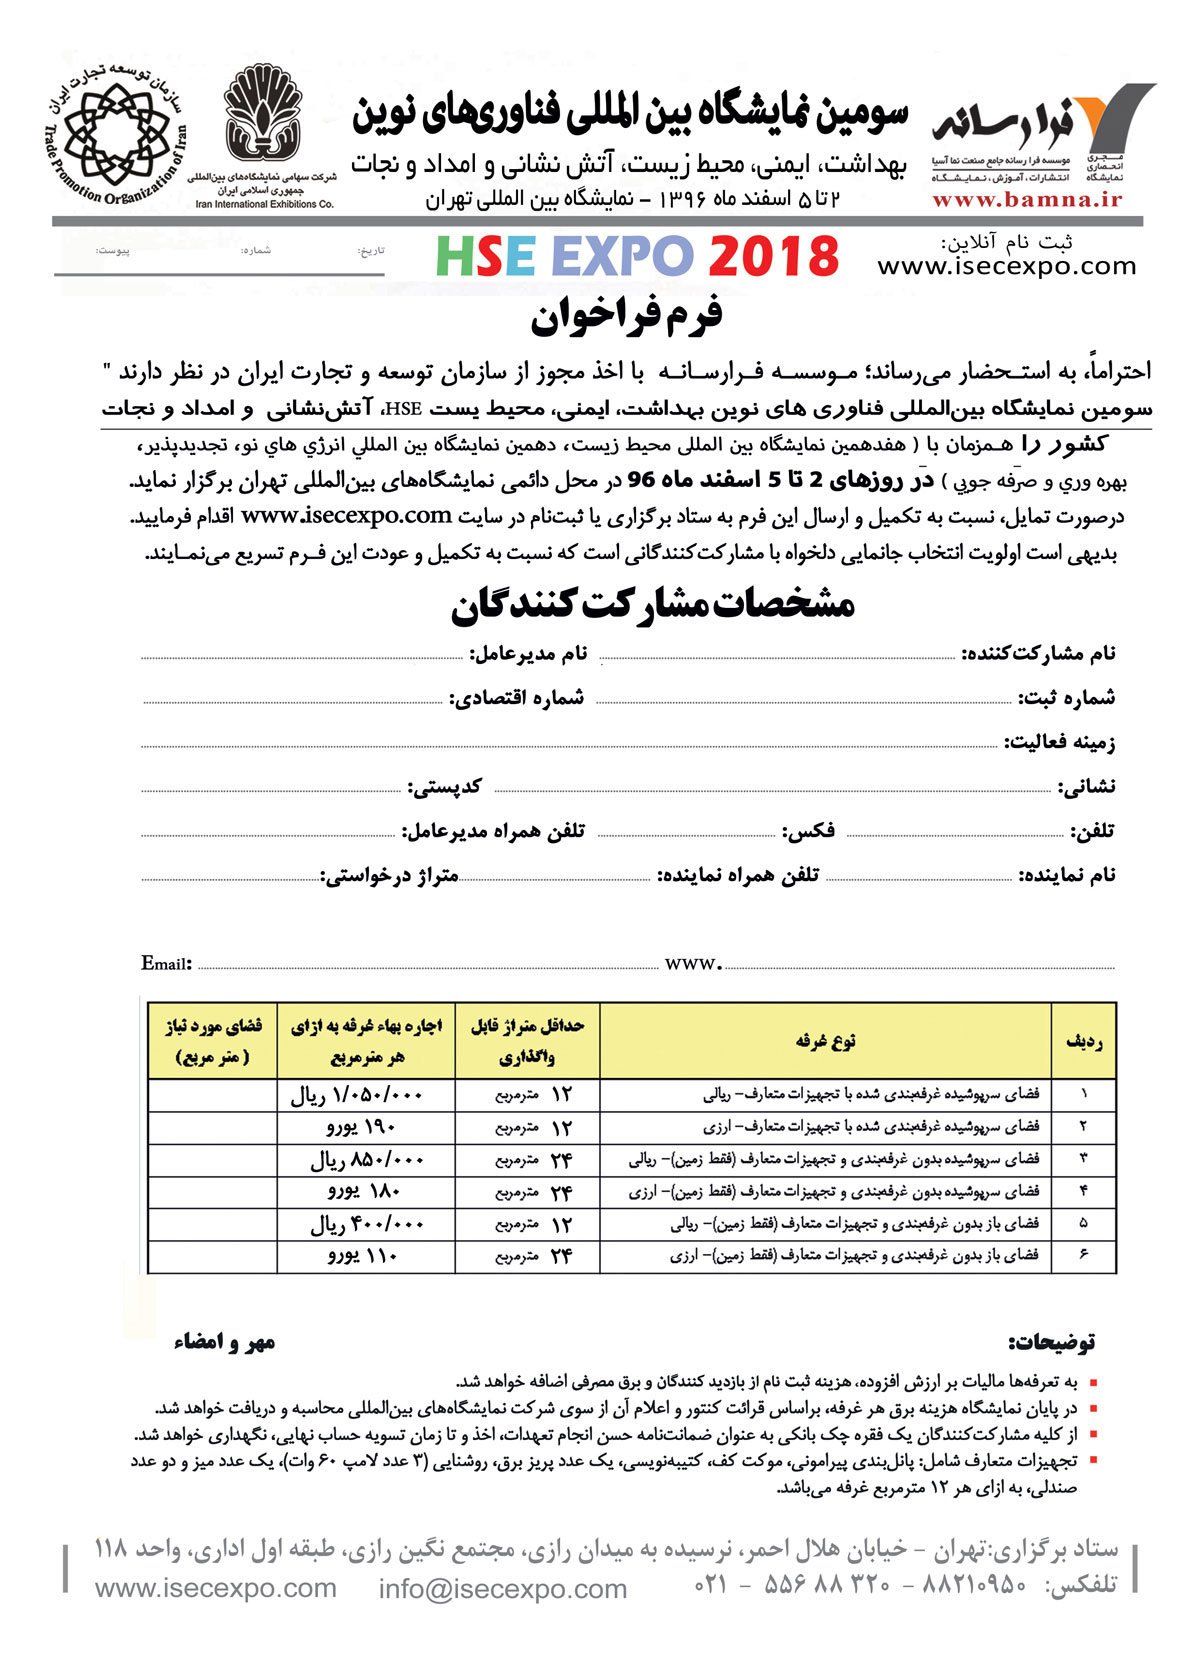 HSEexpo-2016-Registration-Form